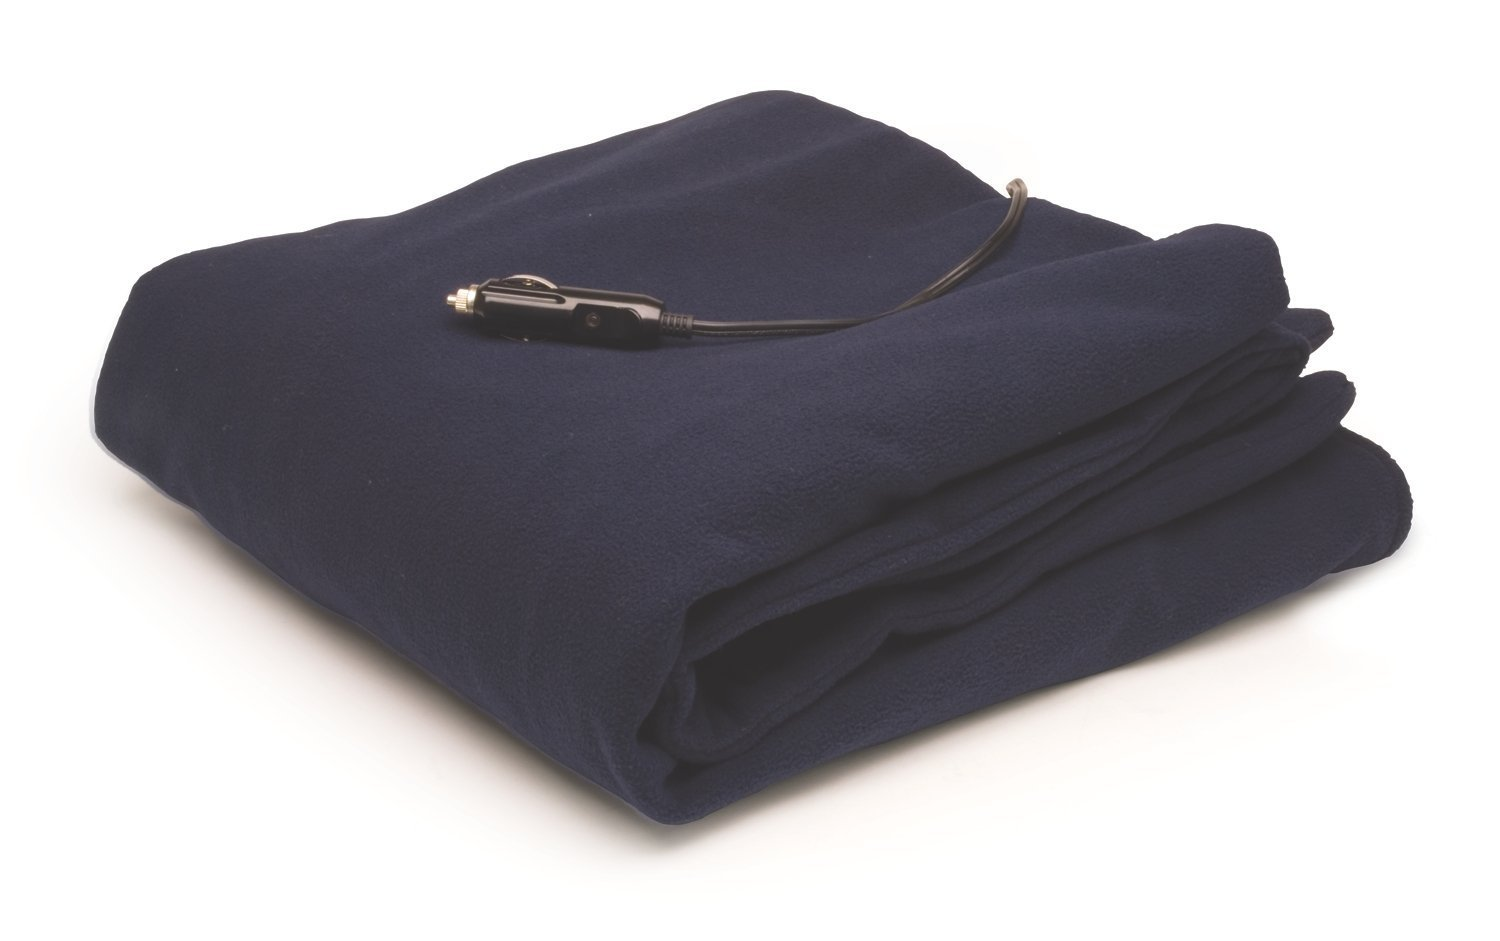 RoadPro 12-Volt 100-Percent Polar Fleece Heated Travel Blanket RPHB-110DB